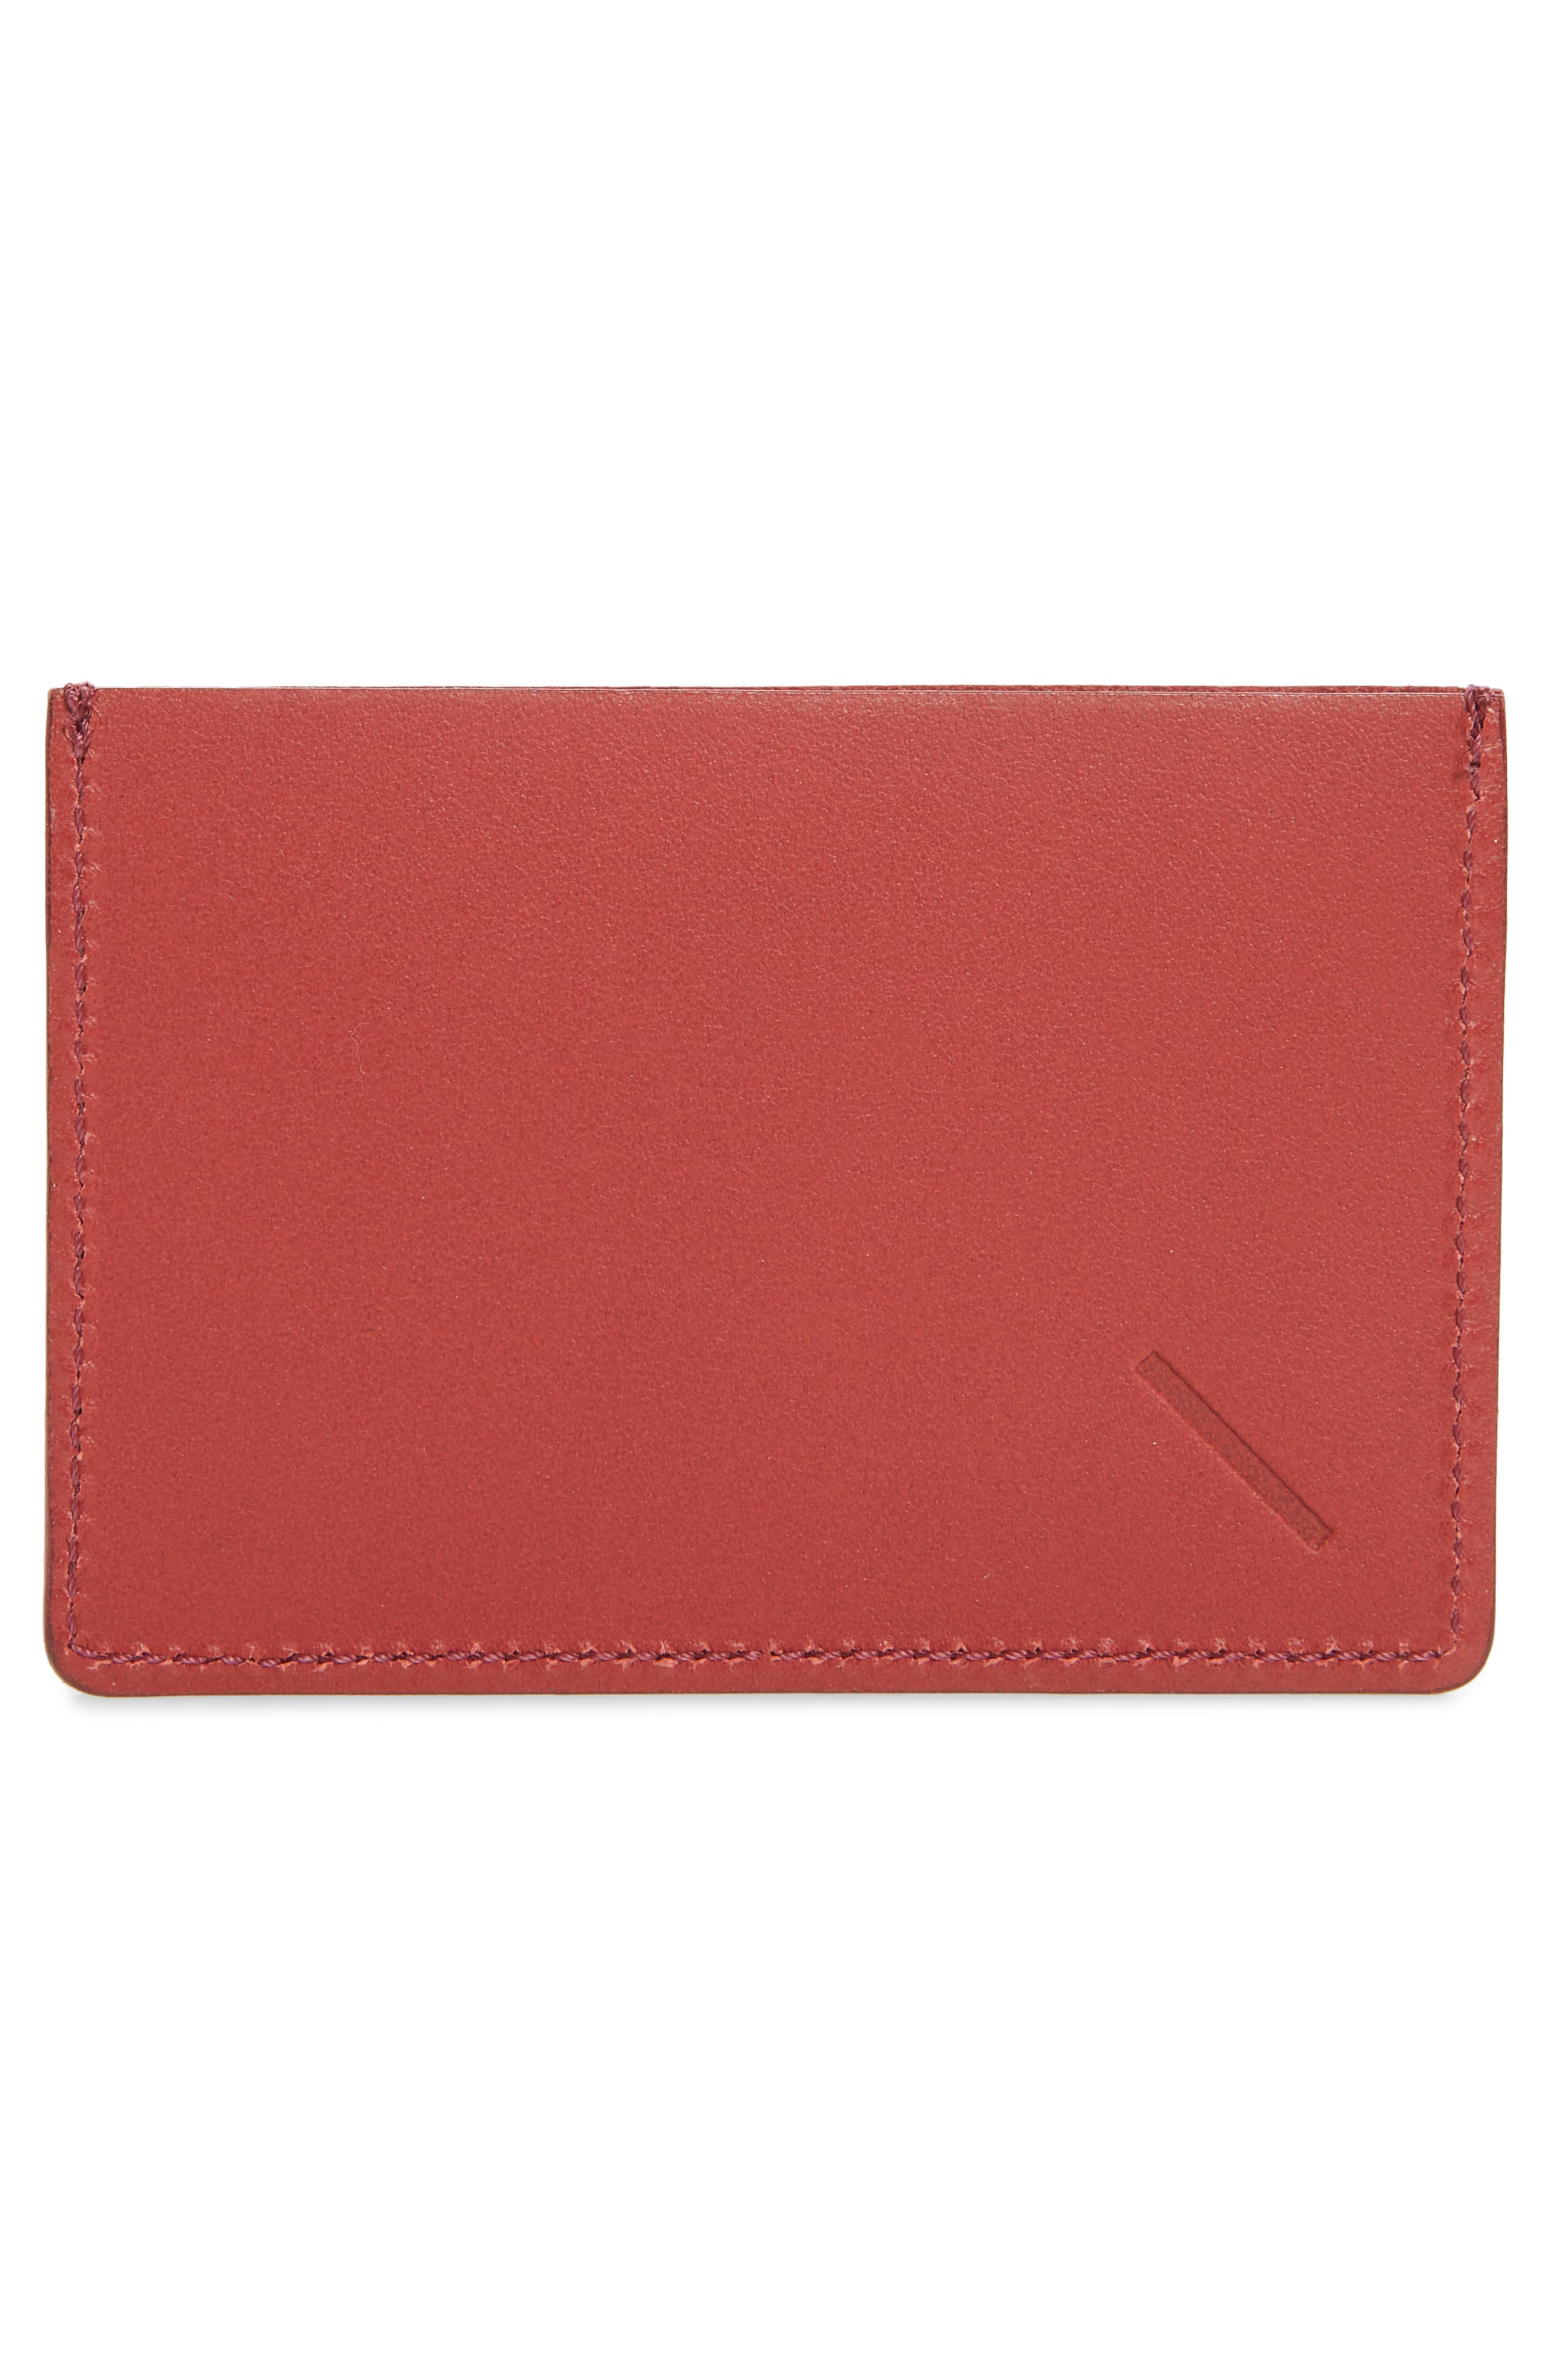 SATURDAYS NYC, Ryan Leather Card Case, Alternate thumbnail 2, color, TRUE RED